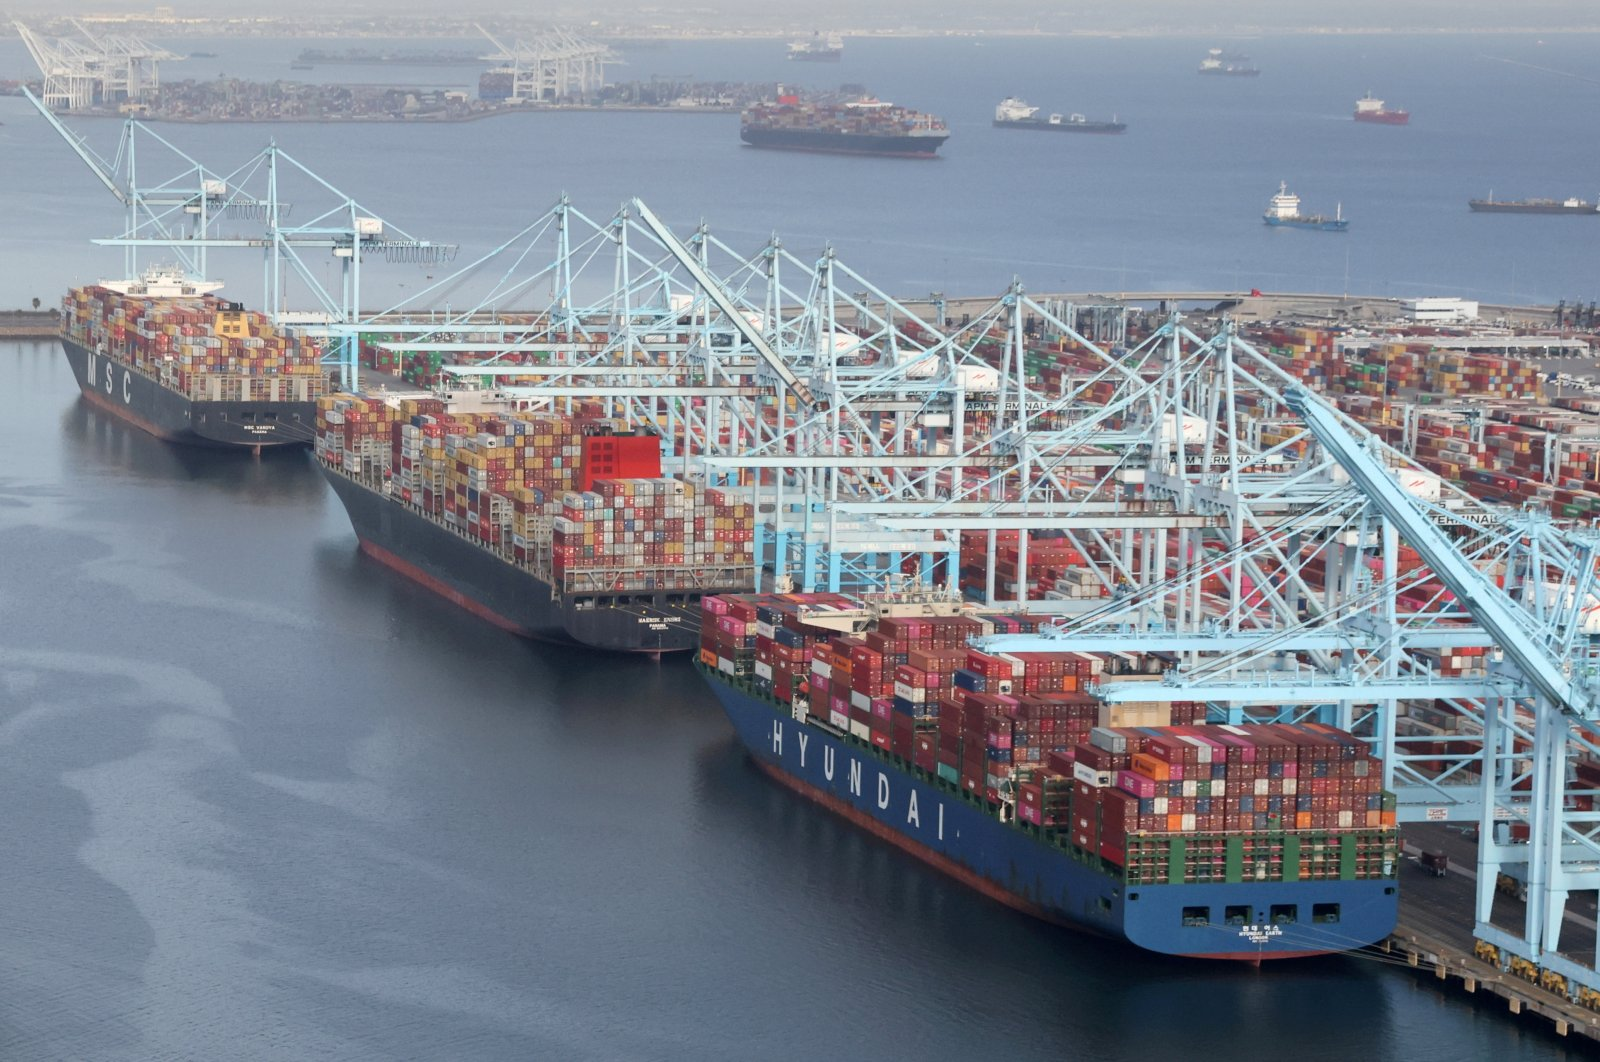 Shipping containers are unloaded from ships at a container terminal at the Port of Long Beach-Port of Los Angeles complex in Los Angeles, California, U.S., April 7, 2021. (Reuters Photo)